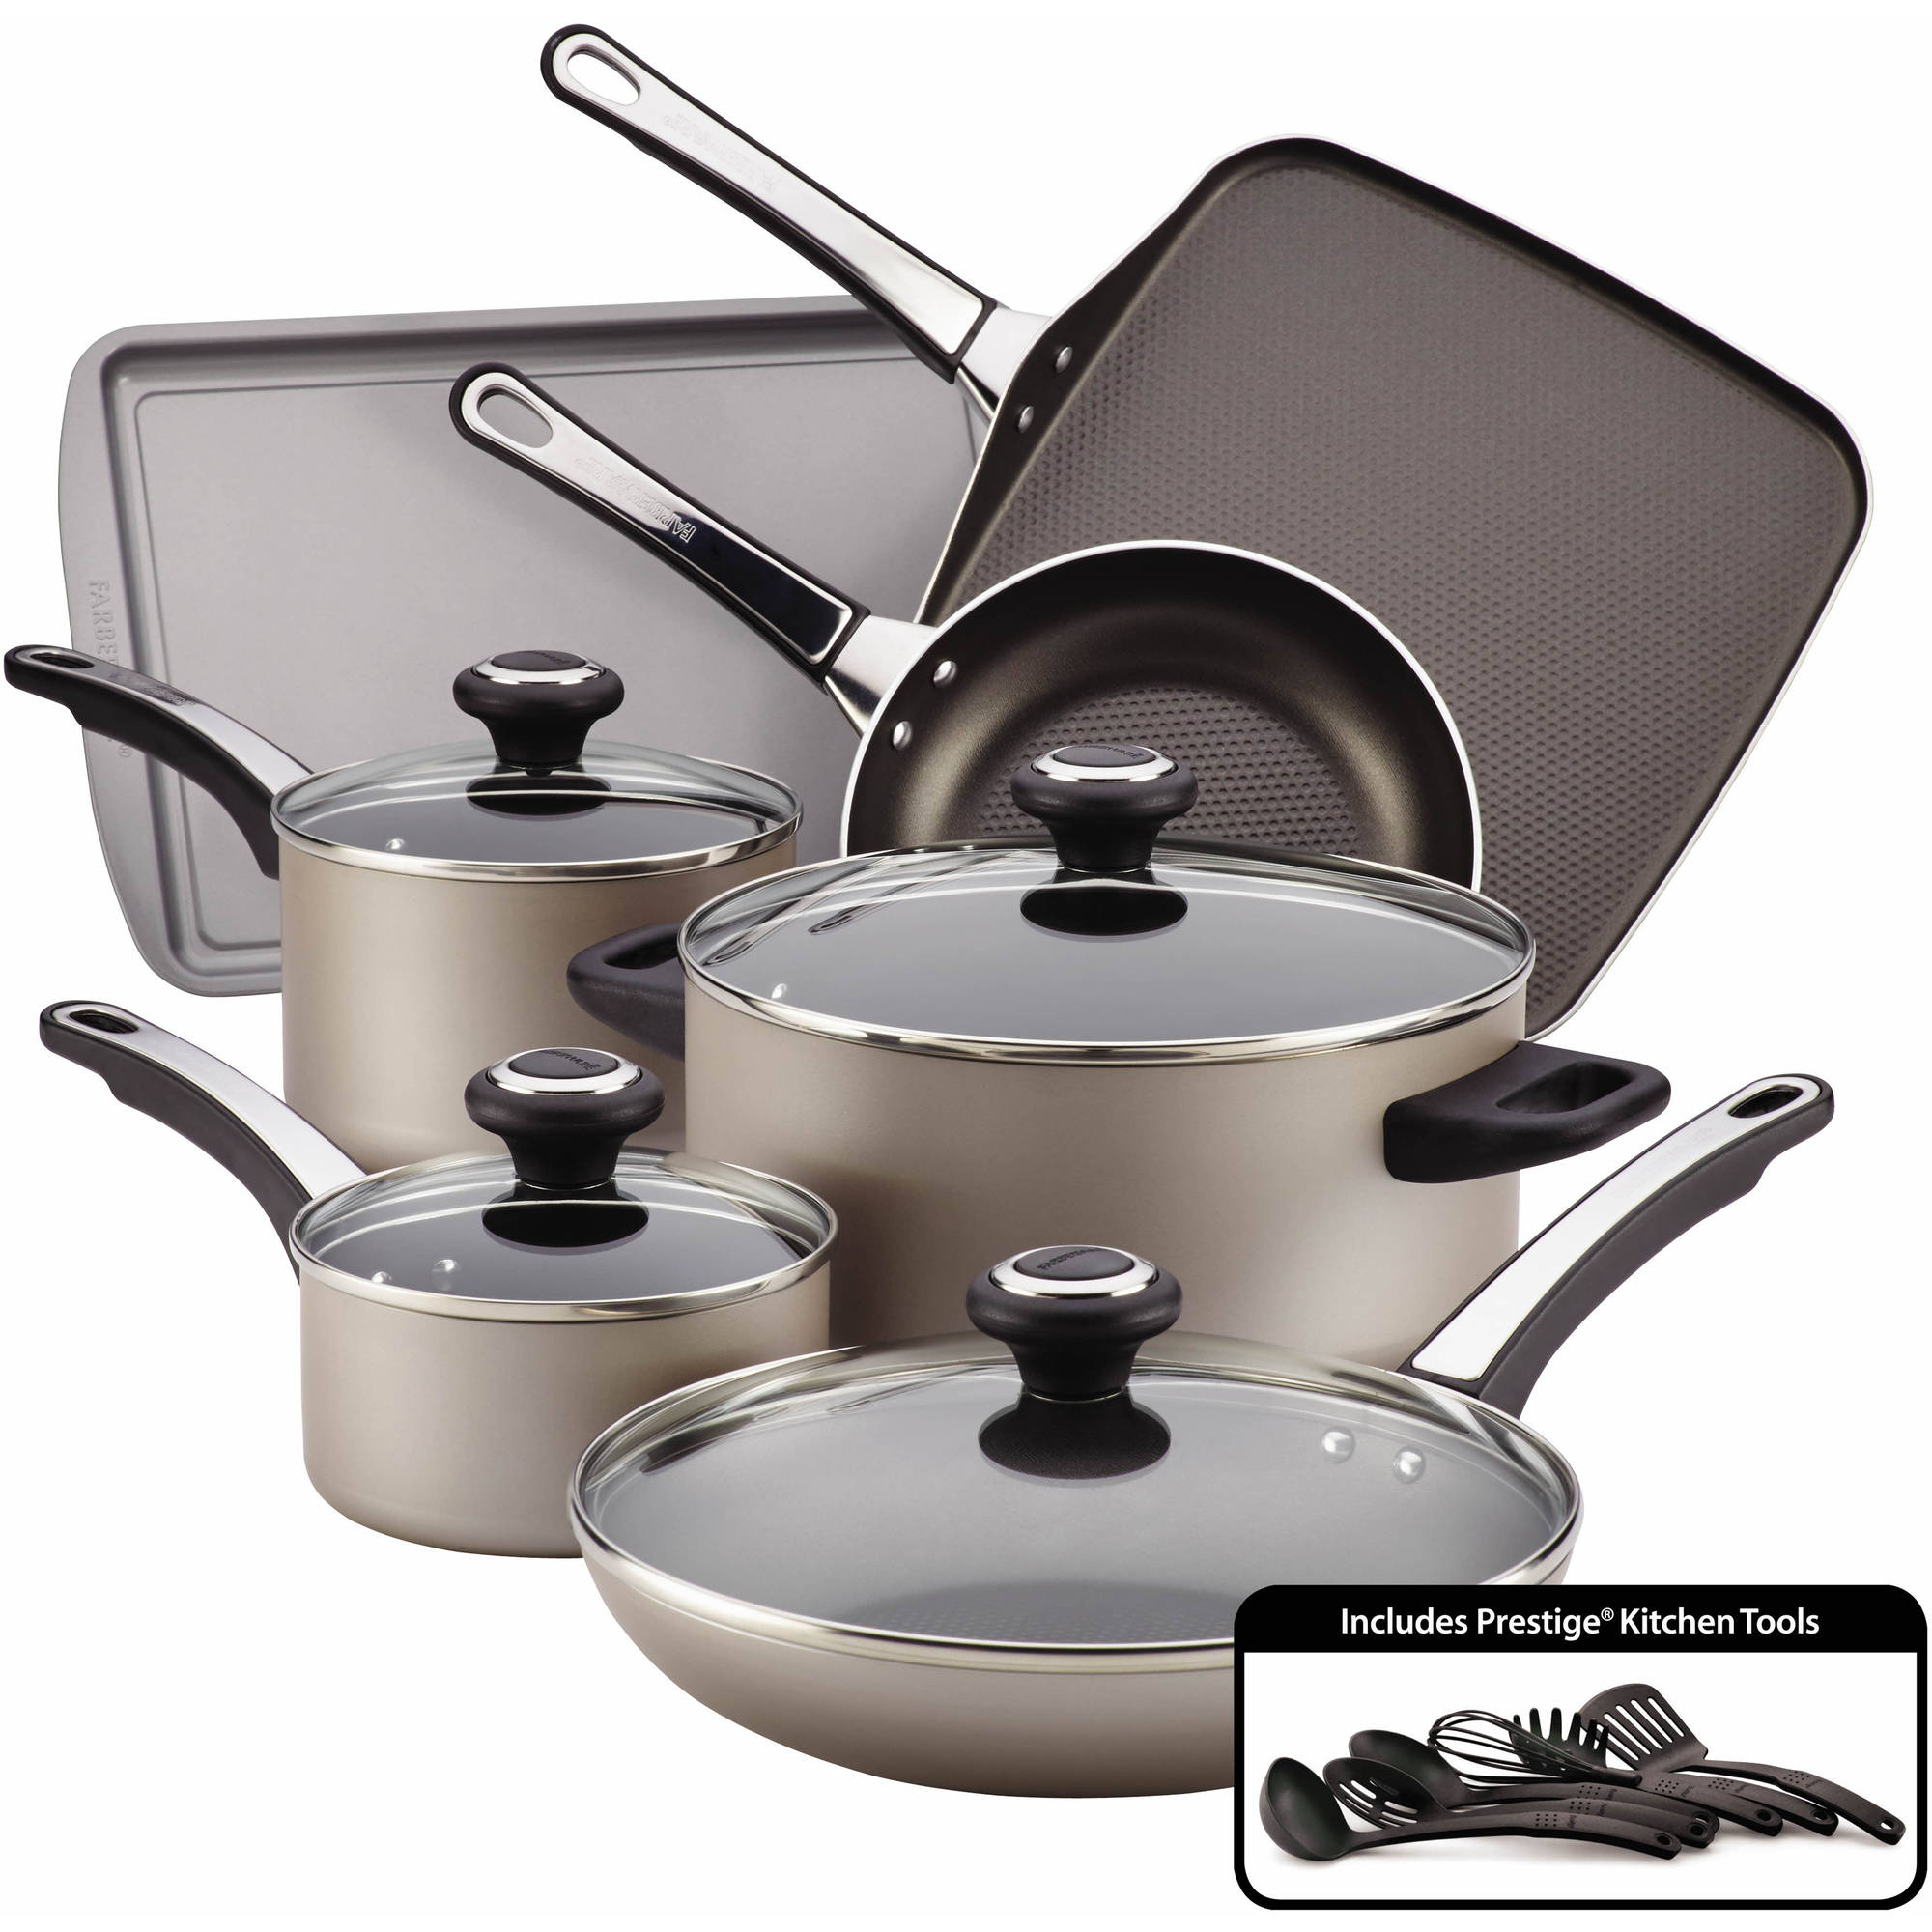 Faberware High Performance Nonstick 17-Piece Cookware Set